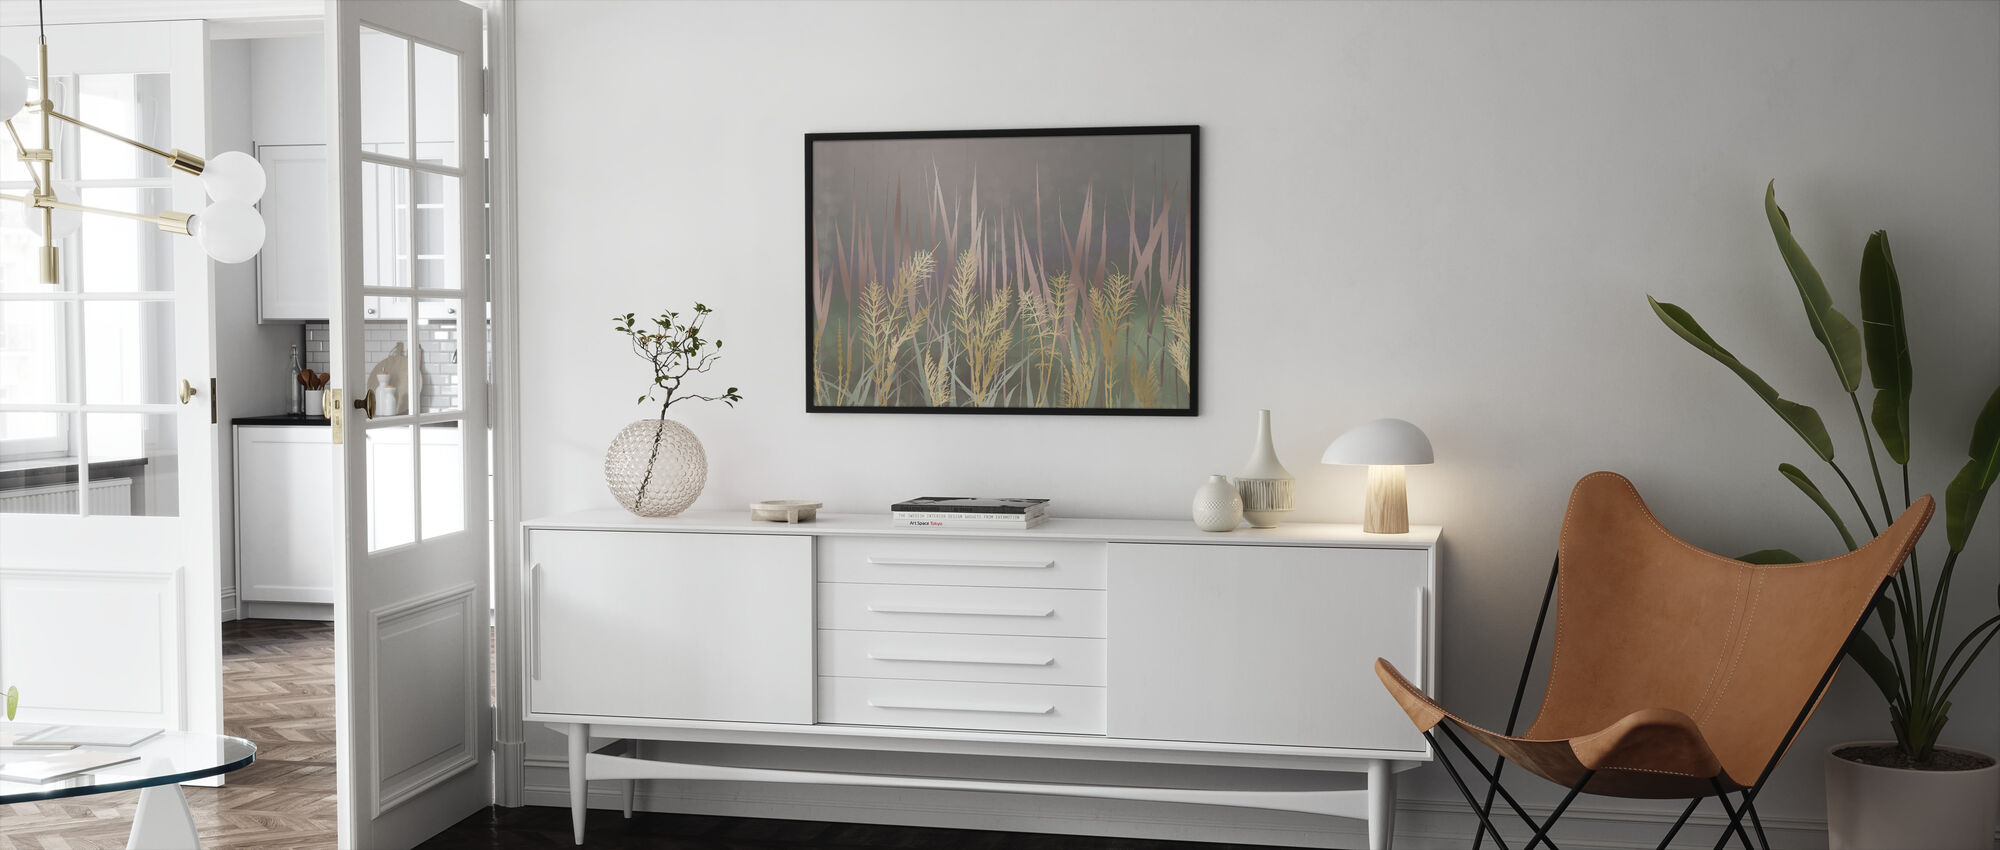 Lightening Grass II - Framed print - Living Room